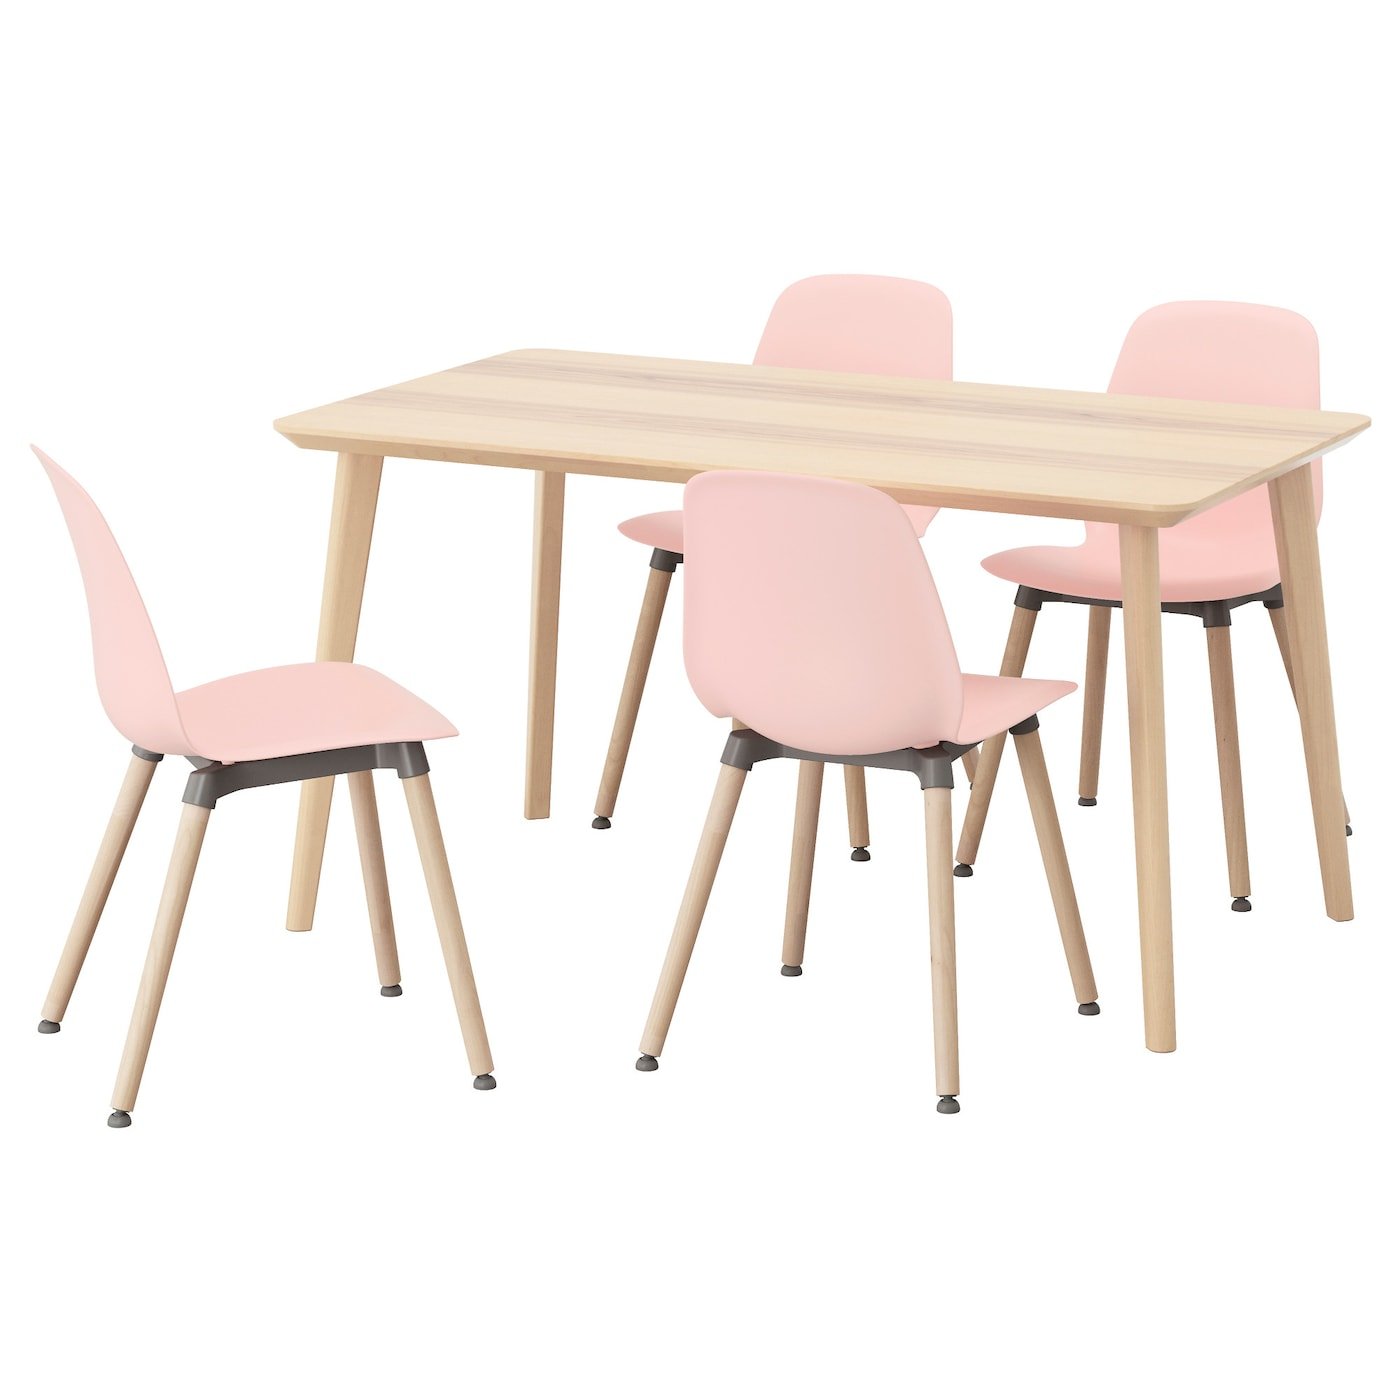 Leifarne lisabo table and 4 chairs ash veneer pink 140 cm for Ensemble table et chaise ikea